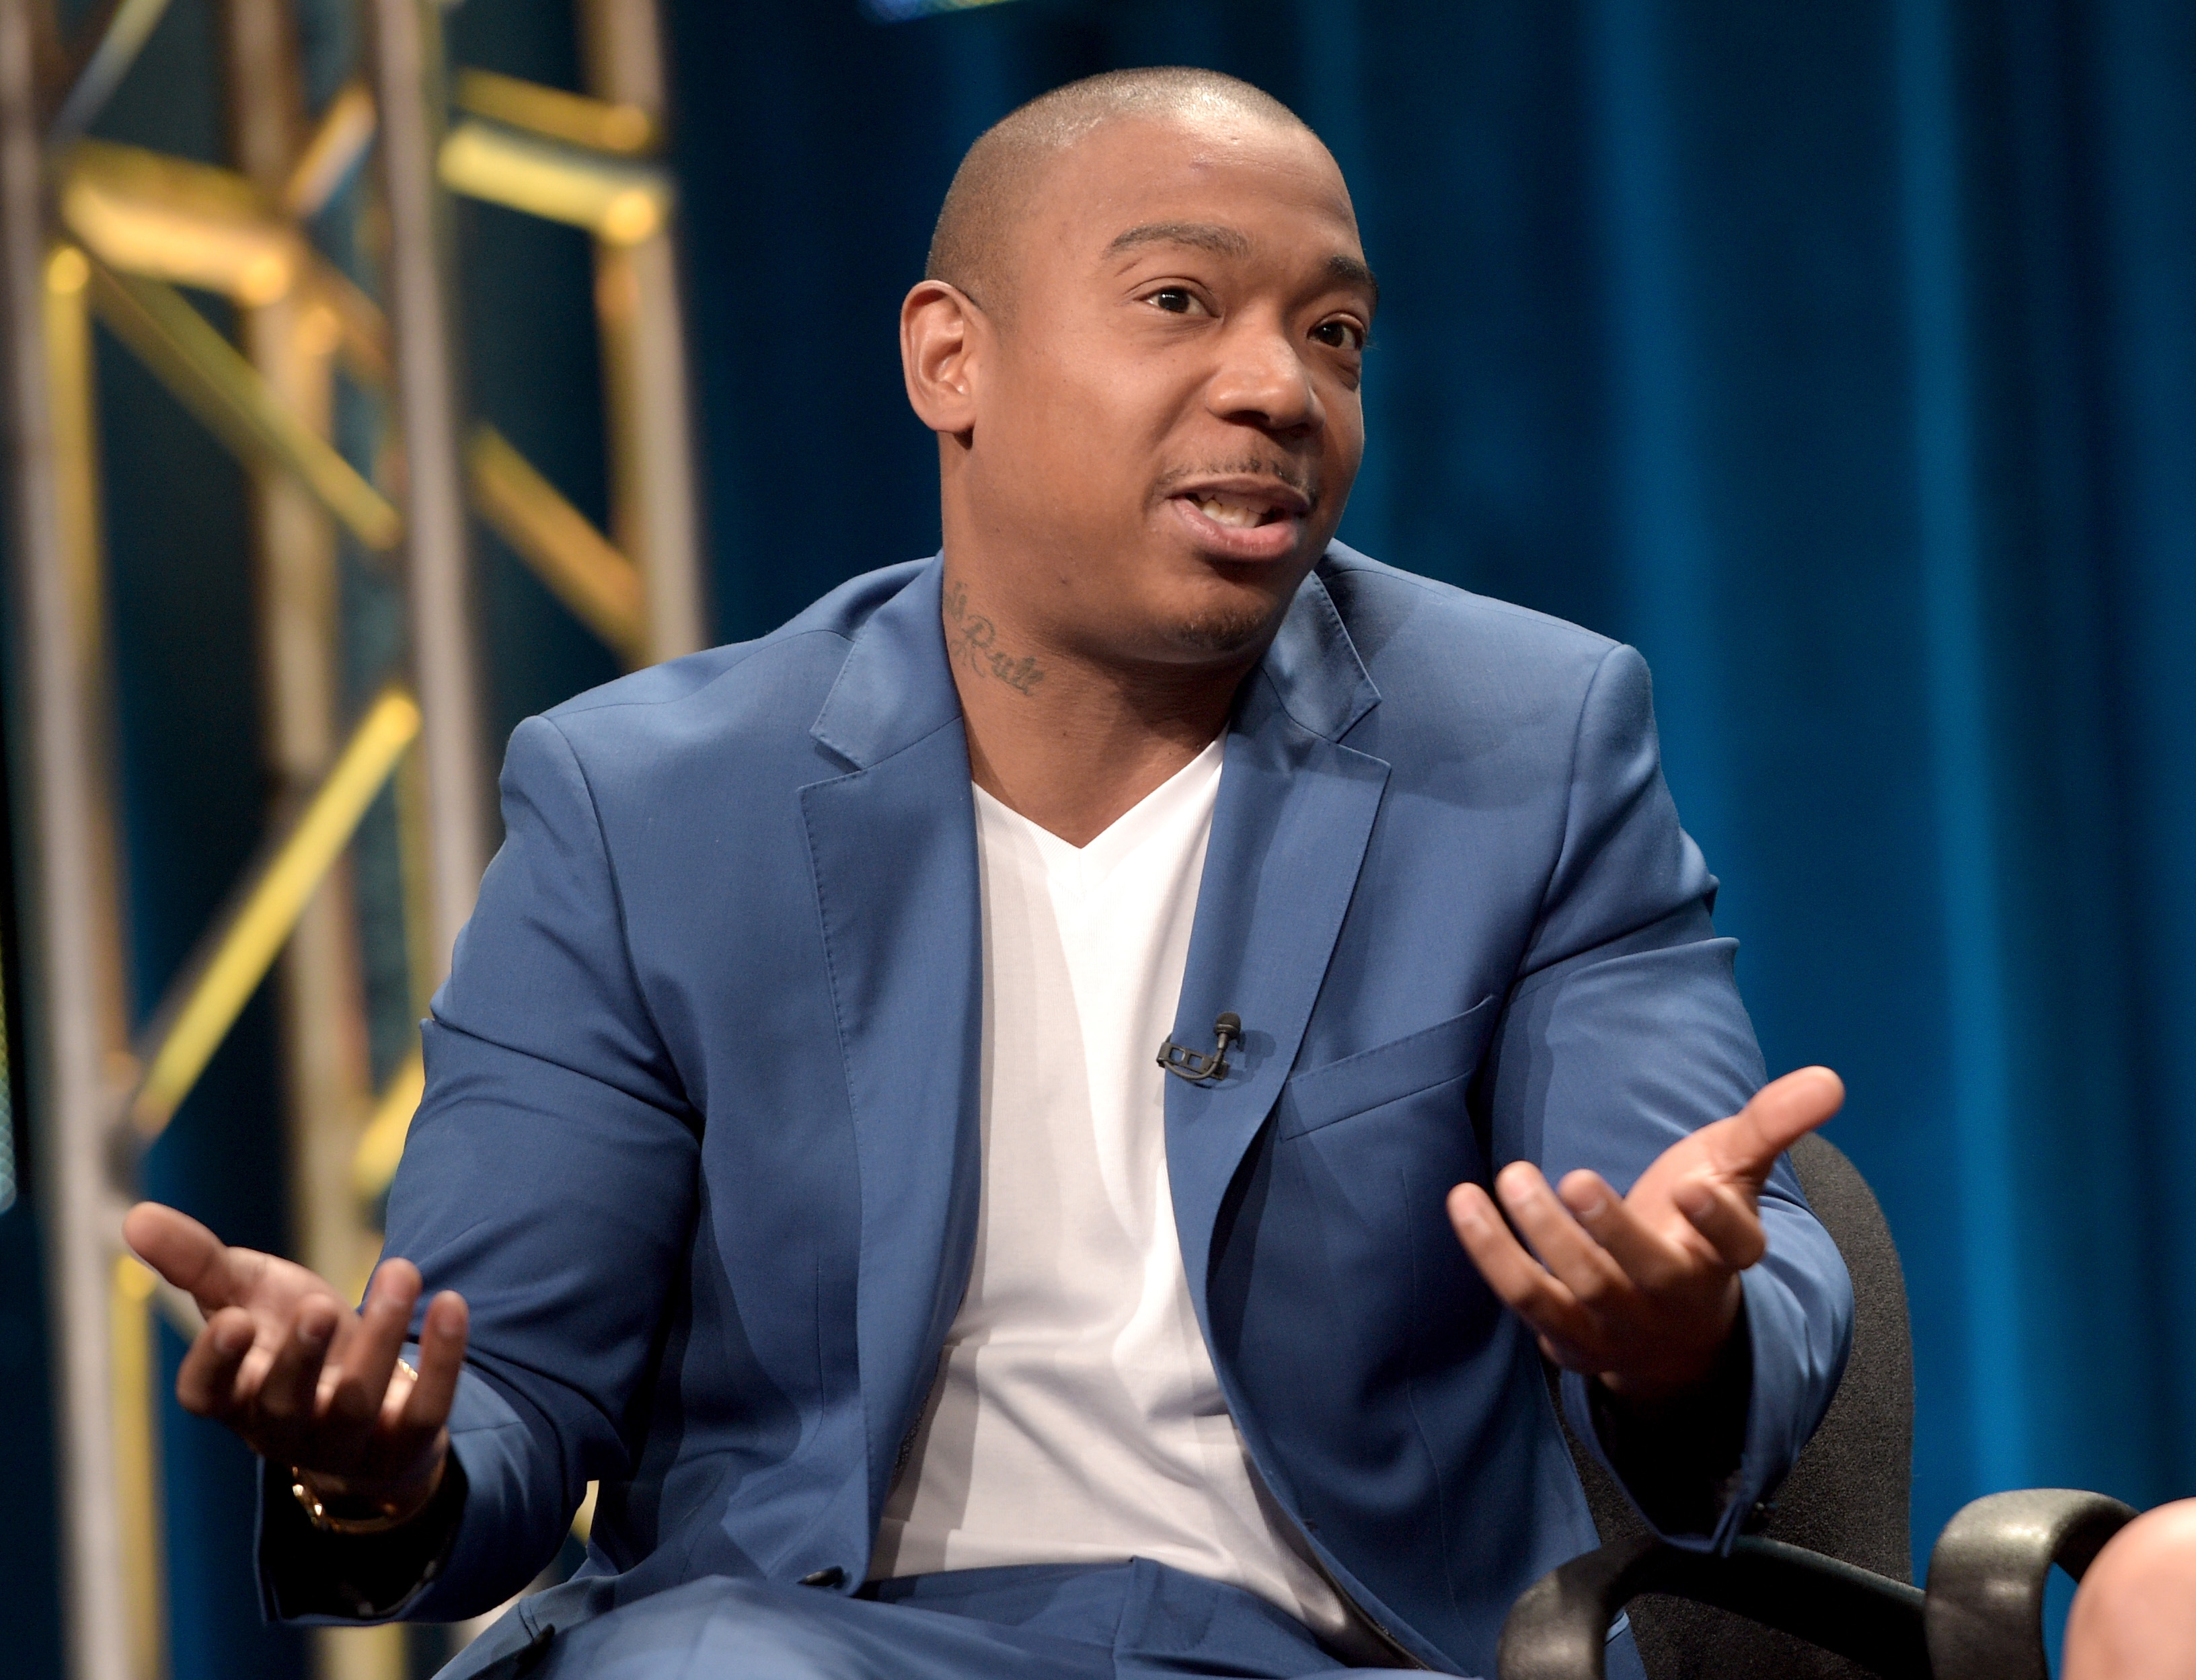 Ja Rule onstage during the Viacom TCA Presentation at The Beverly Hilton Hotel on July 29, 2015 in Beverly Hills, California.